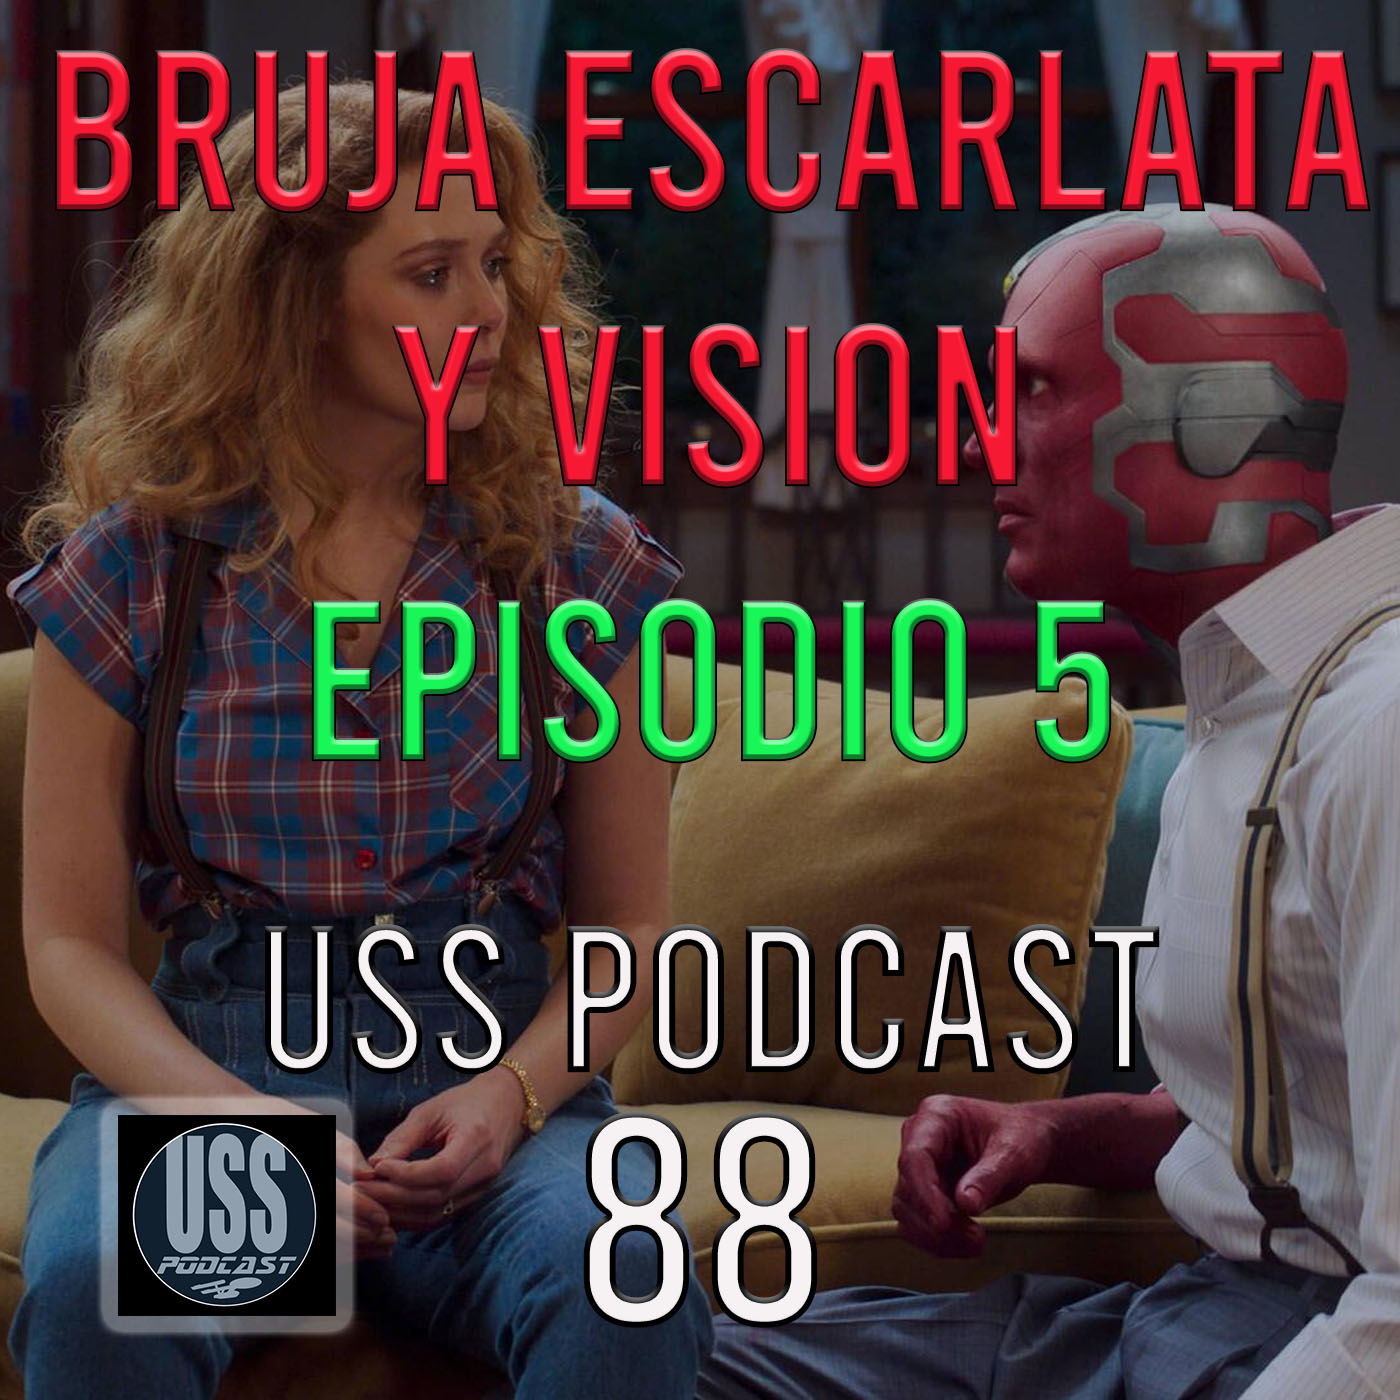 Bruja Escarlata y Vision Episodio 5 USS Podcast 88